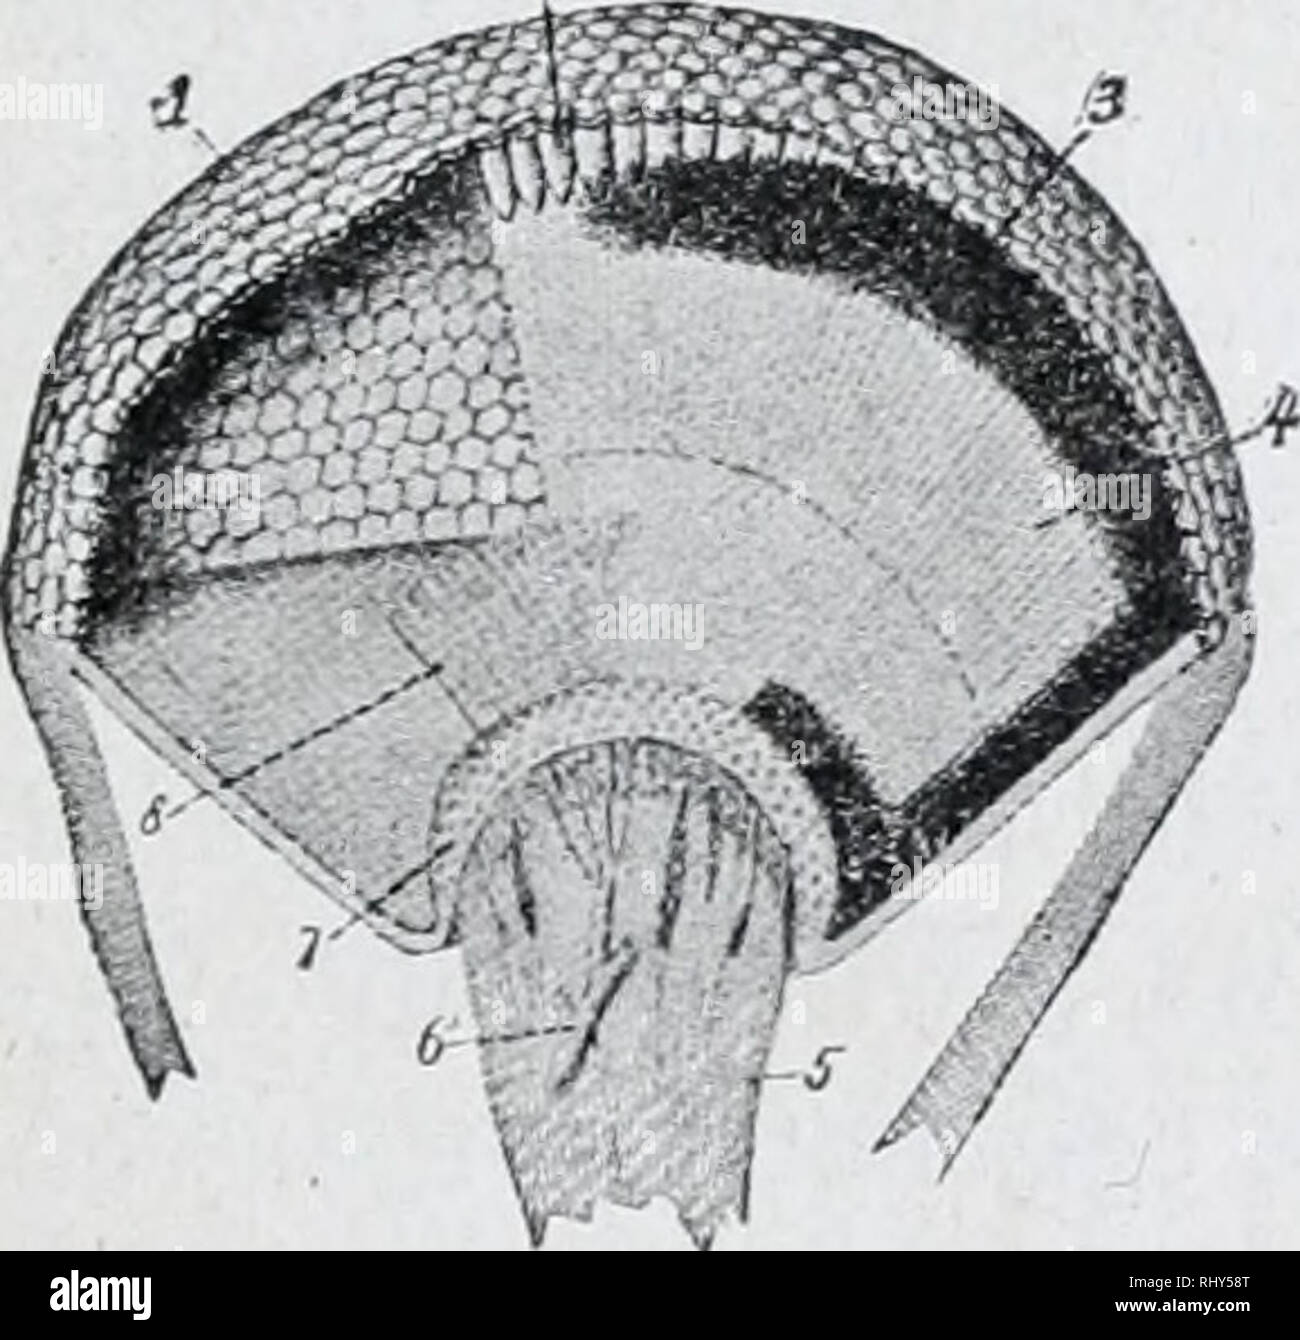 hight resolution of diagram of simple eye of insect l lens a optic nerve sight arc bic hly developed and consist of two compound eyes on the side of